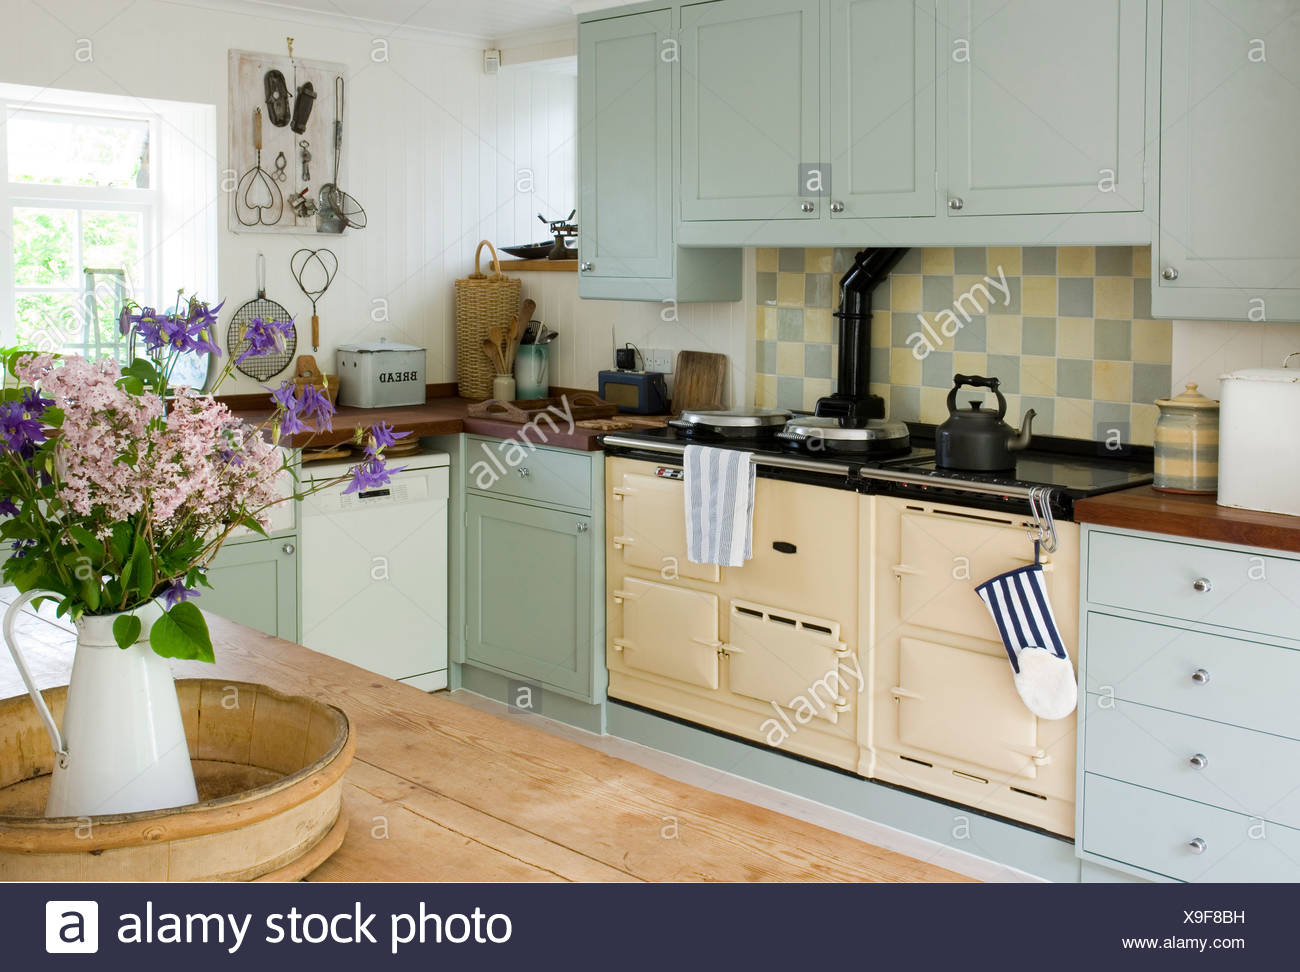 Old Fashioned Stove In Kitchen